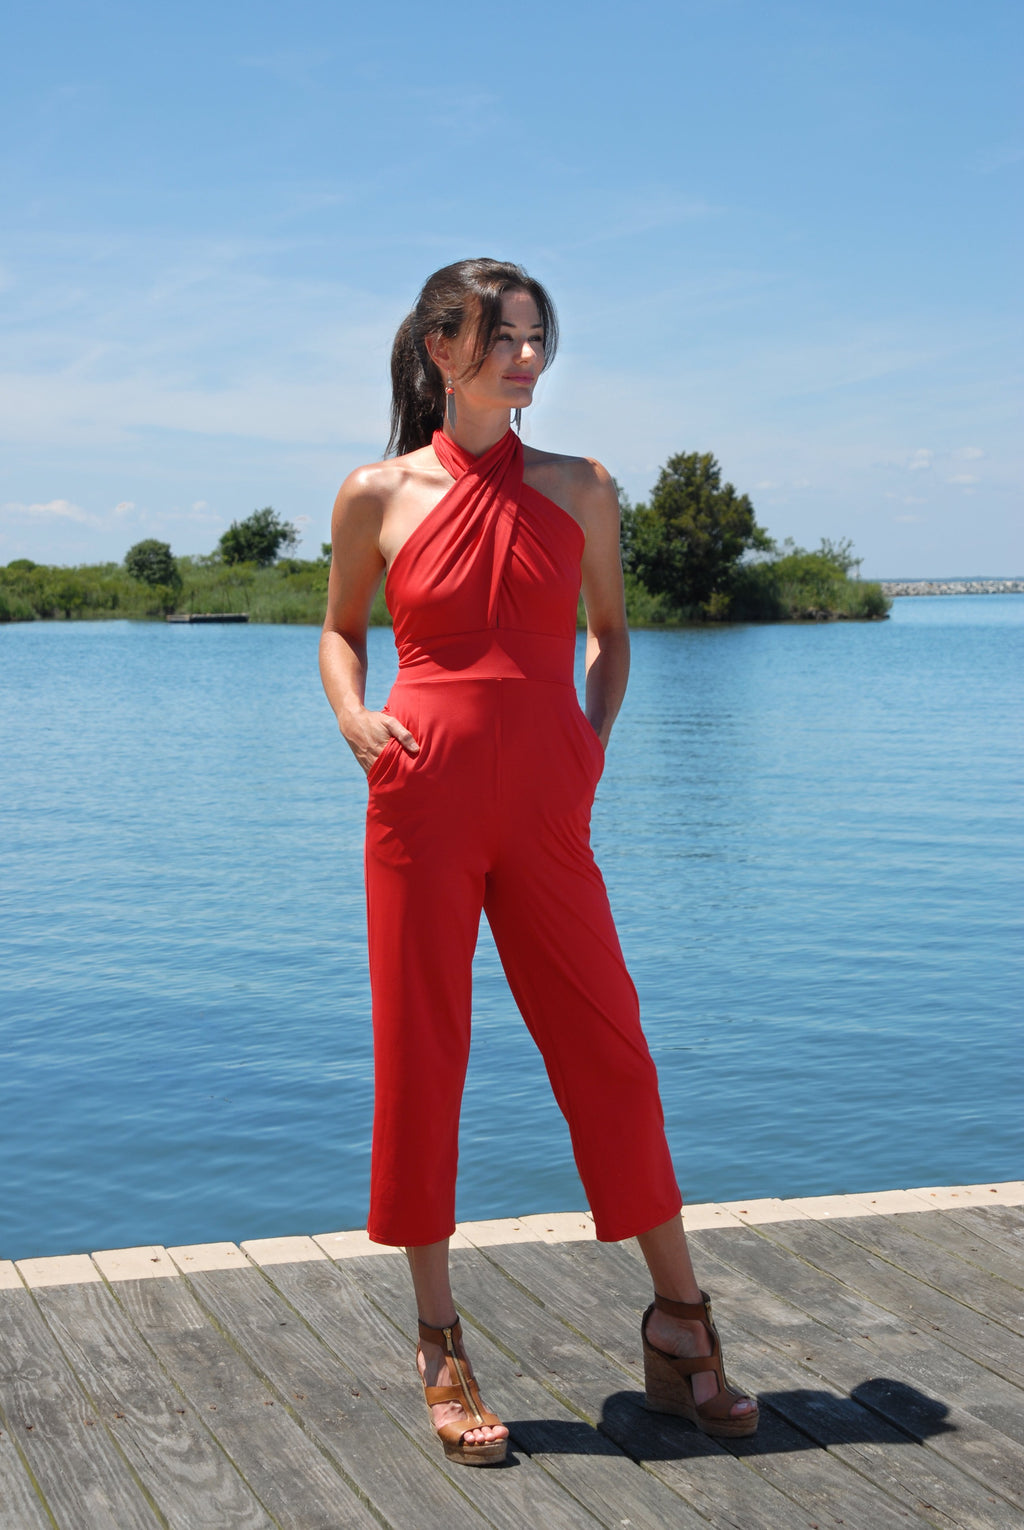 pretty-young-woman-with-brown-hair-standing-next-to-lake-under-the-sun-wearing-red-uv-protective-jumpsuit-designed-for-summer